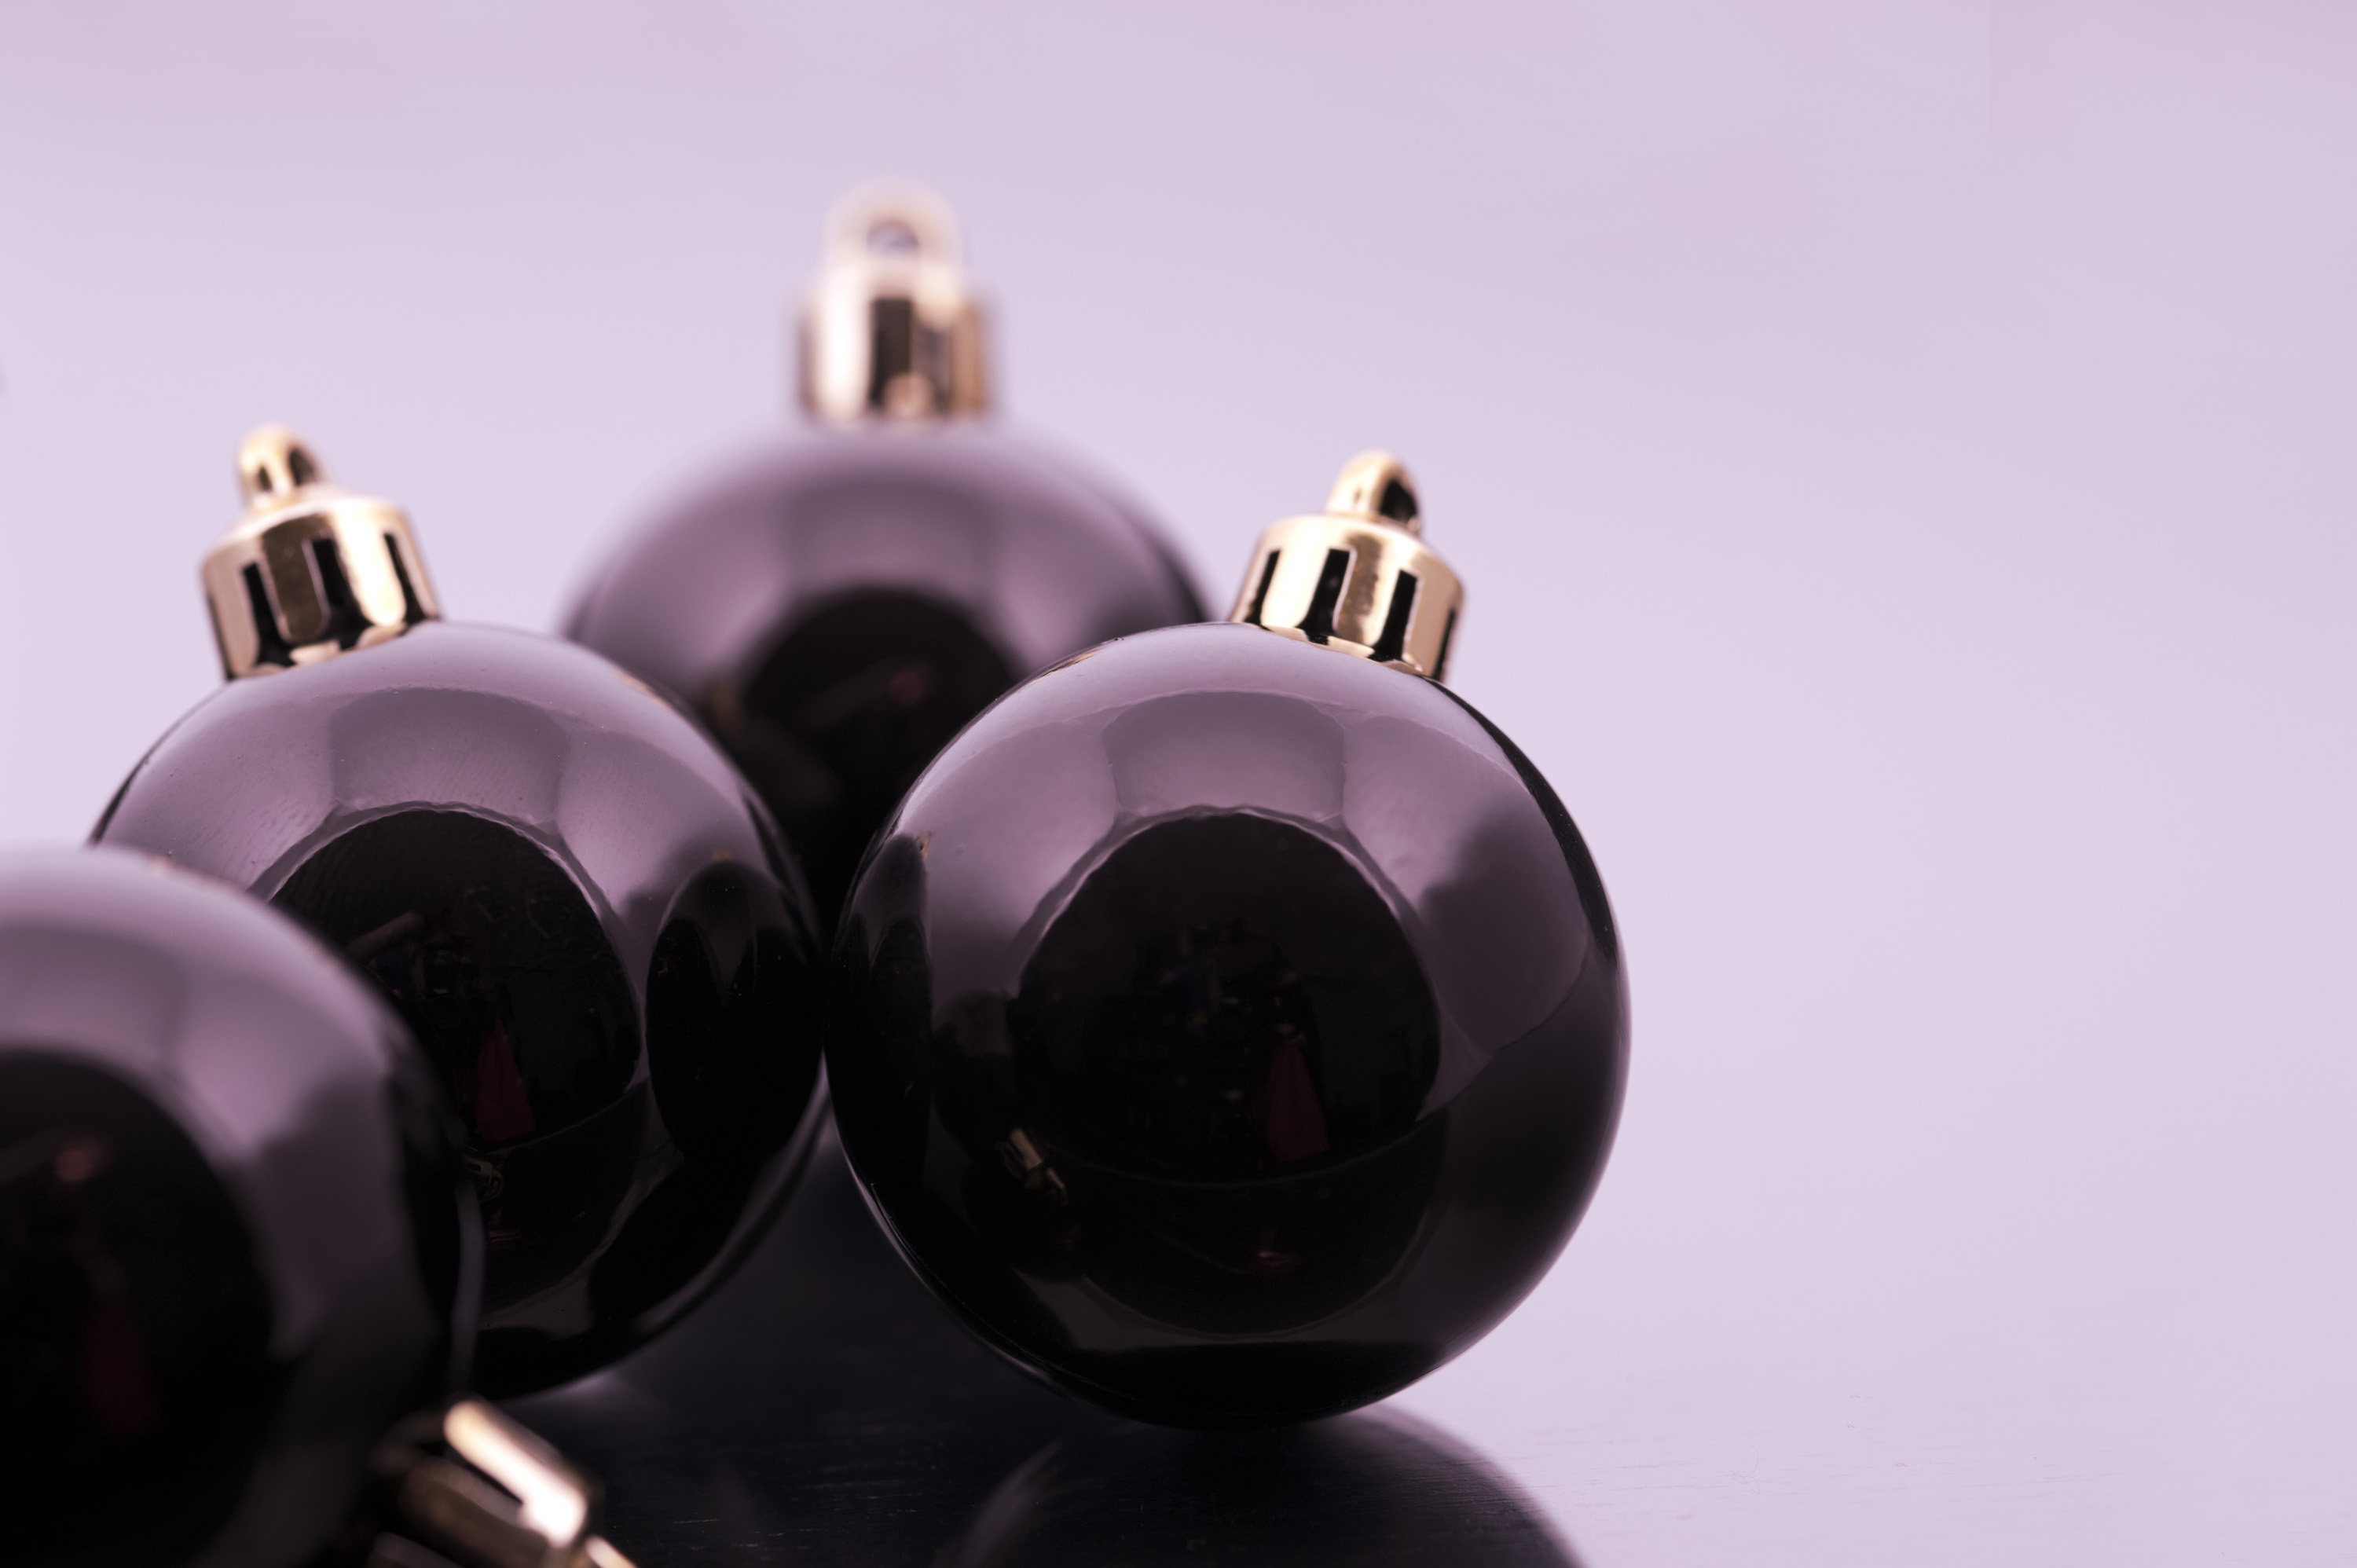 Black Christmas balls with reflections on a grey toned studio background with copyspace for your Xmas message